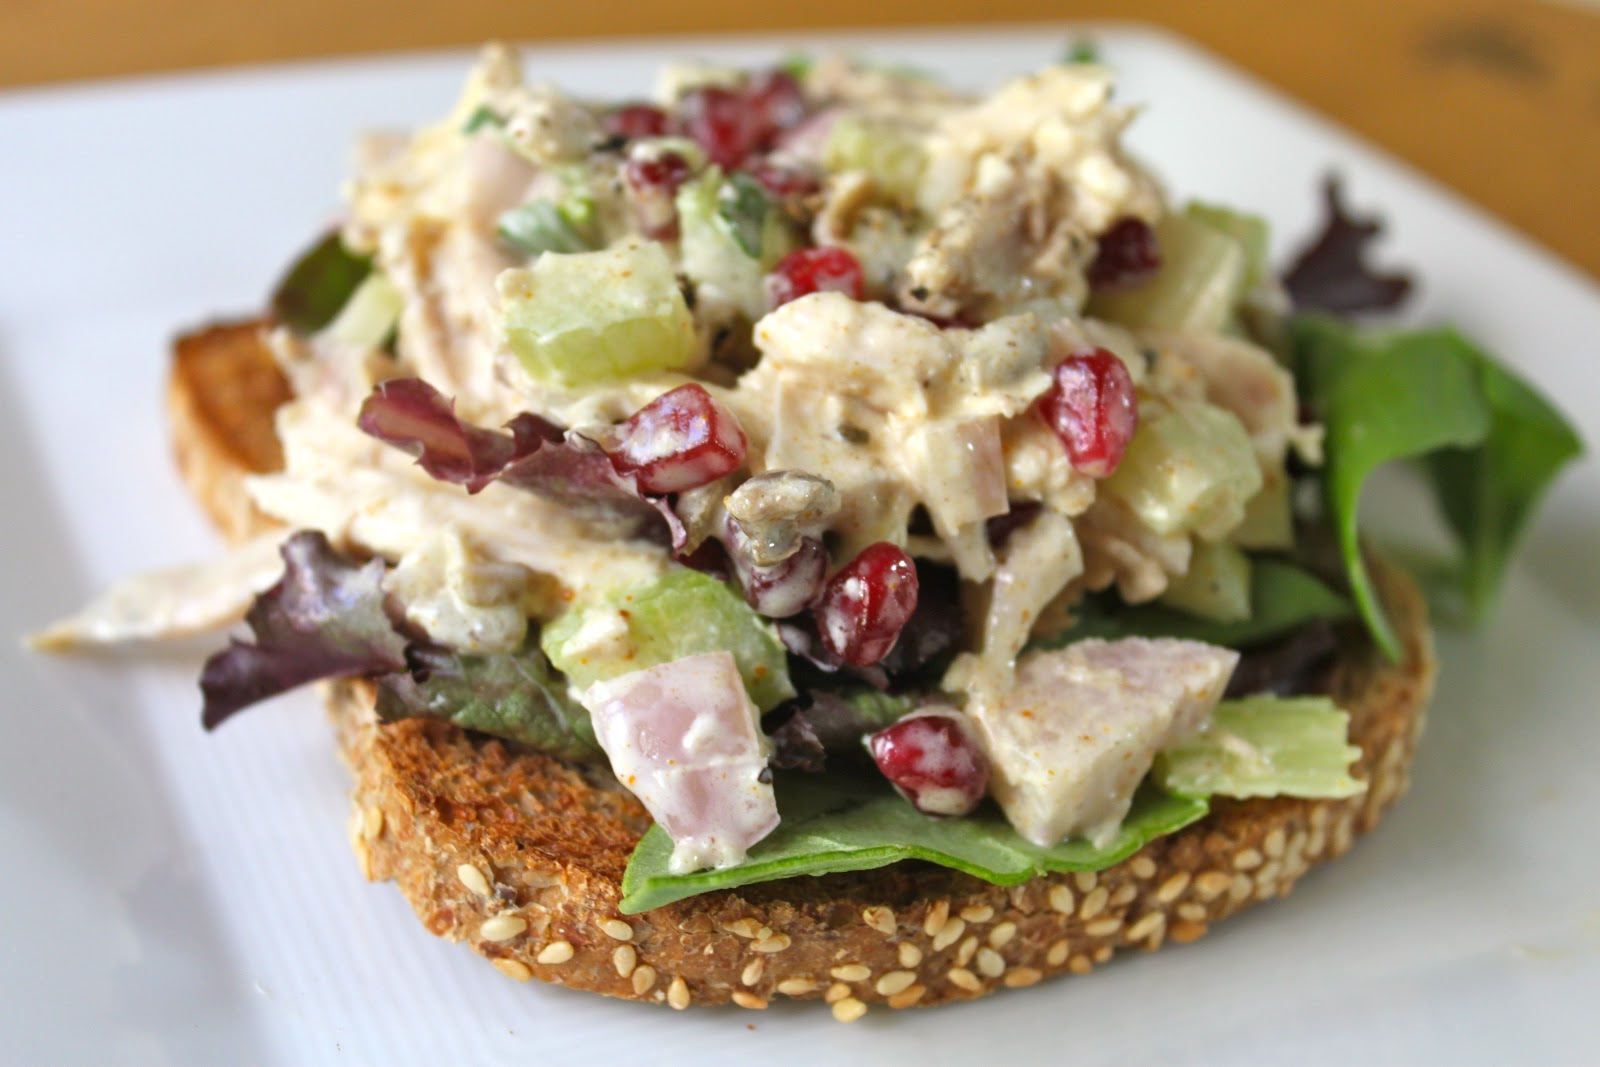 Domestic Divas Blog: Pomegranate Tarragon Chicken Salad Sandwiches